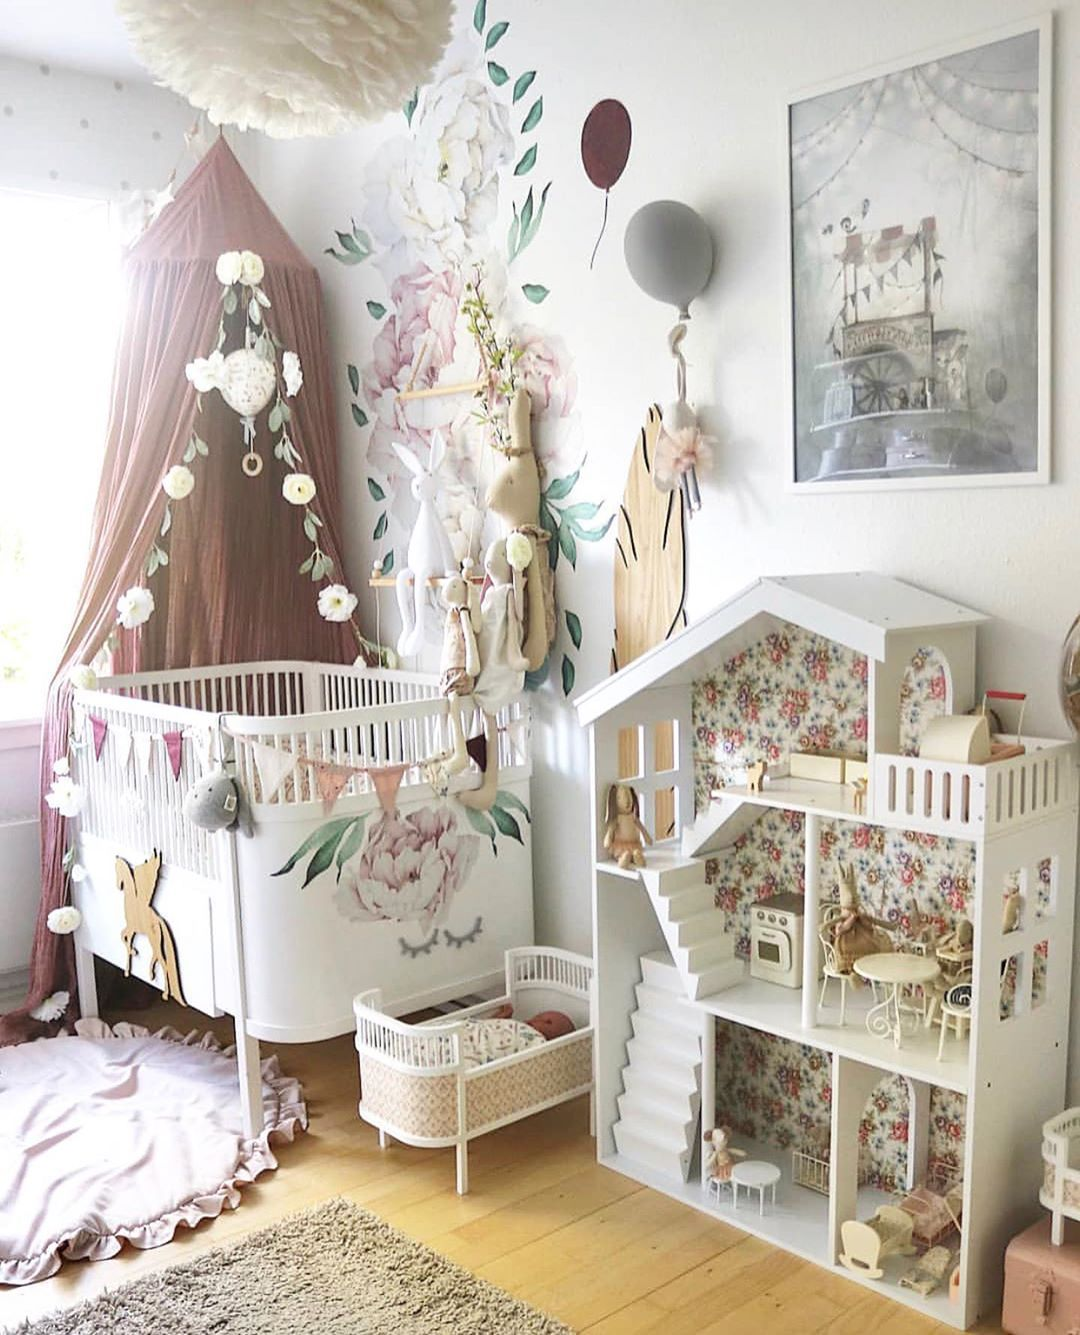 Pictures of Meubles Design Chambre Bebe